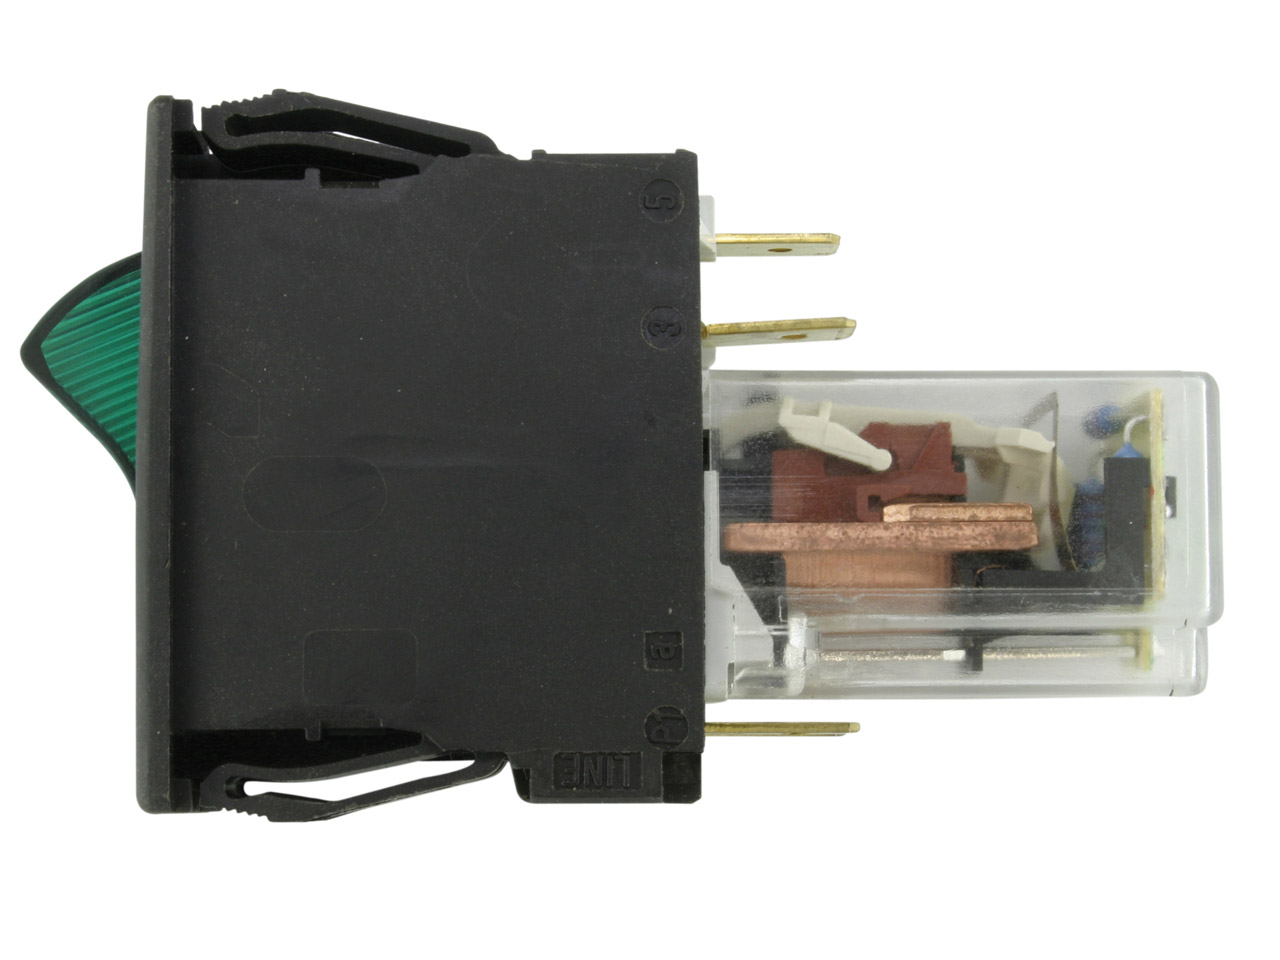 Microflame On/off Switch Model 30 5 Amp Circuit Breaker